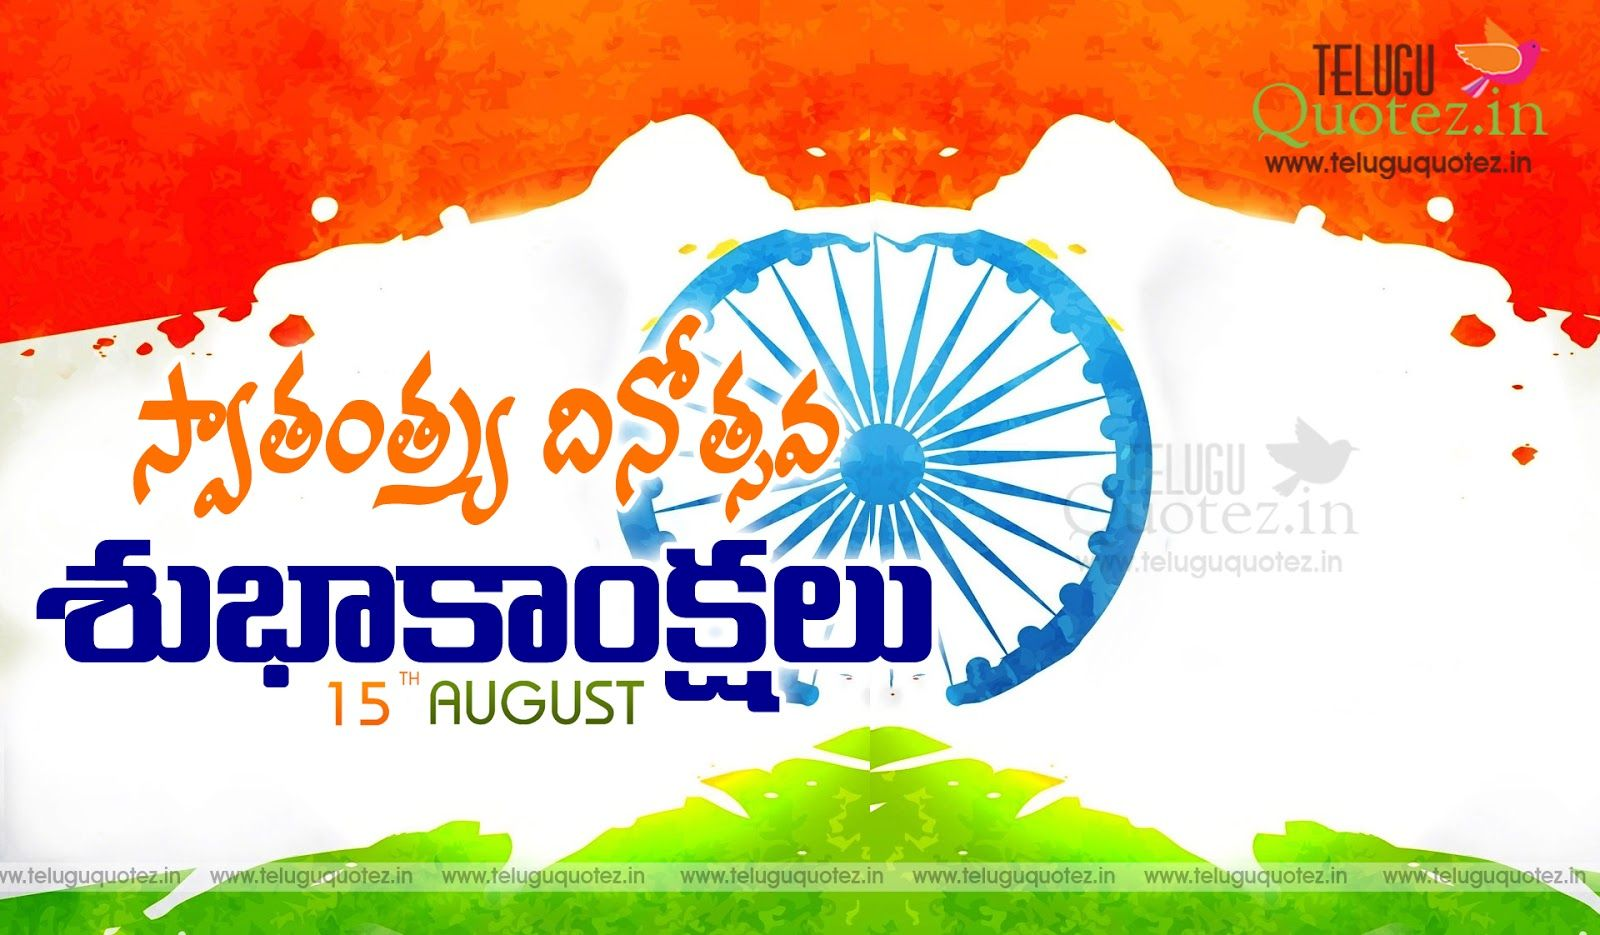 happy independence day india telugu quotes Teluguquotez